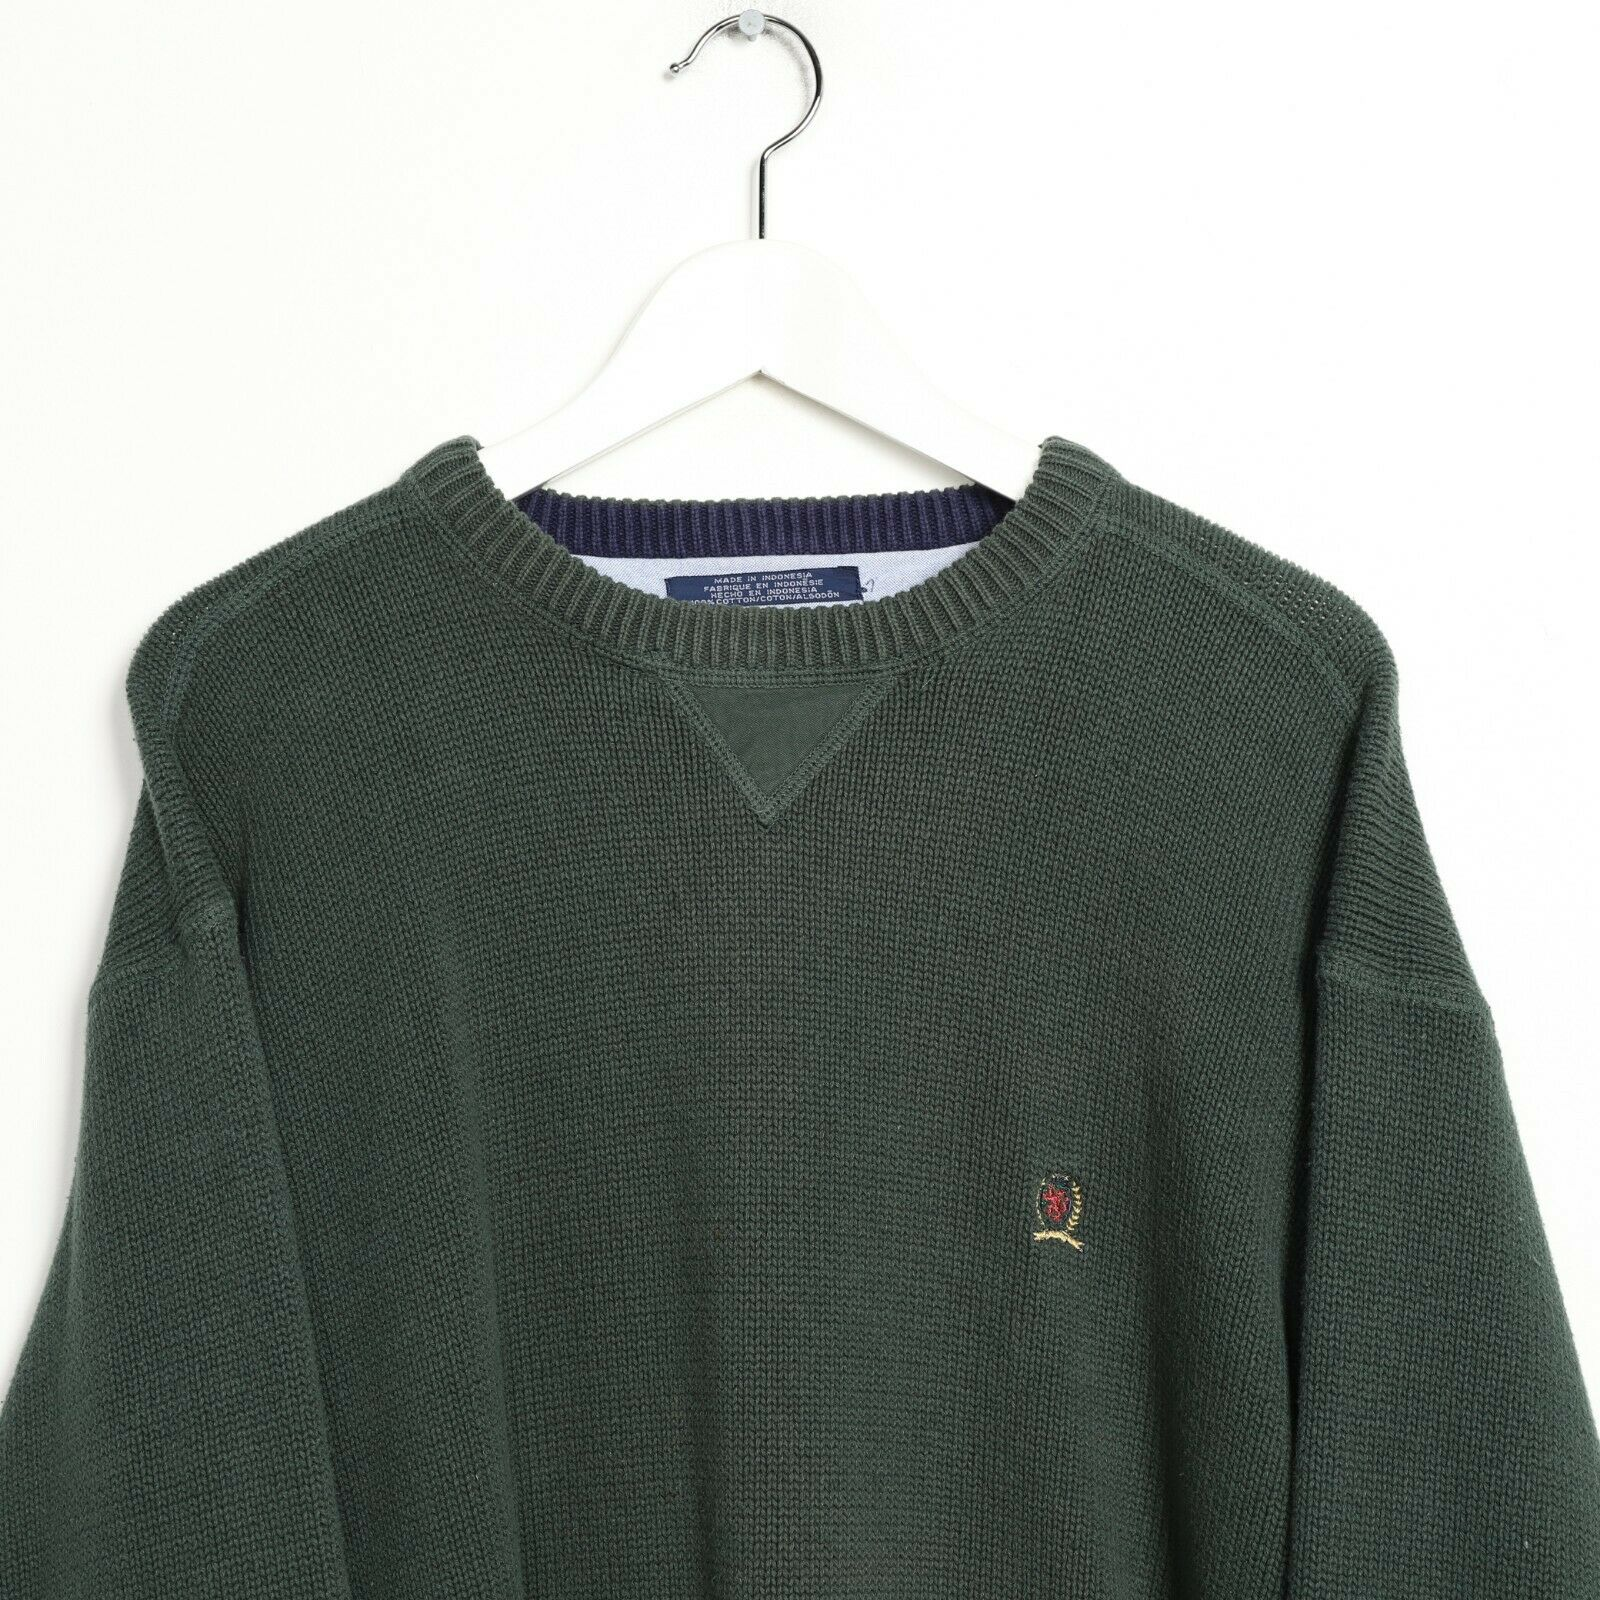 Vintage TOMMY HILFIGER Small Logo Knitted Sweatshirt Jumper Green | Large L